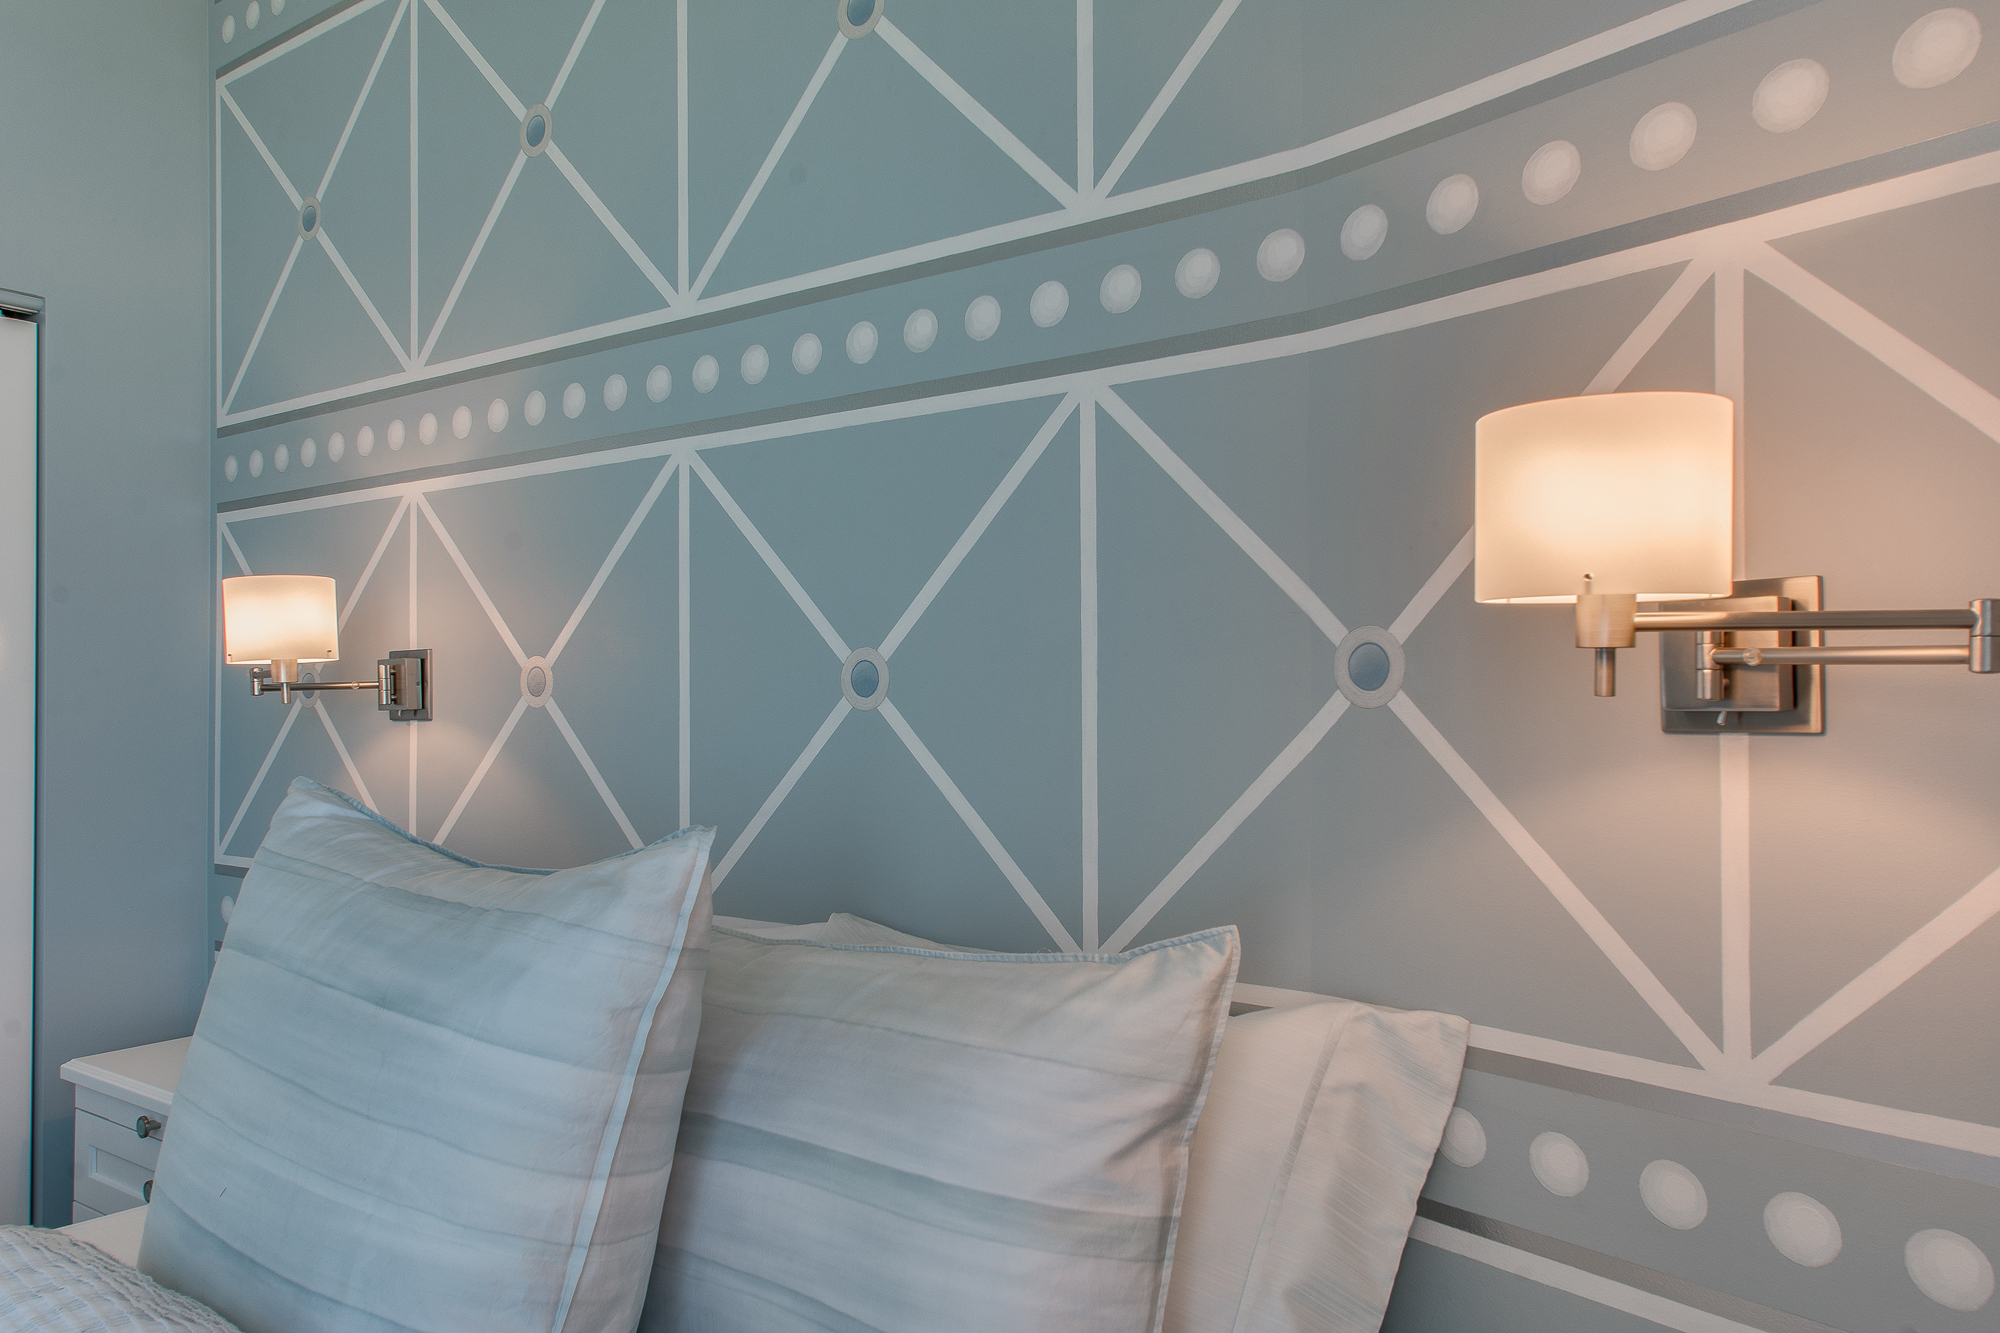 Bedroom Wall Sconces For Reading moises malave - ala lighting specialist<br>chicago showroom at